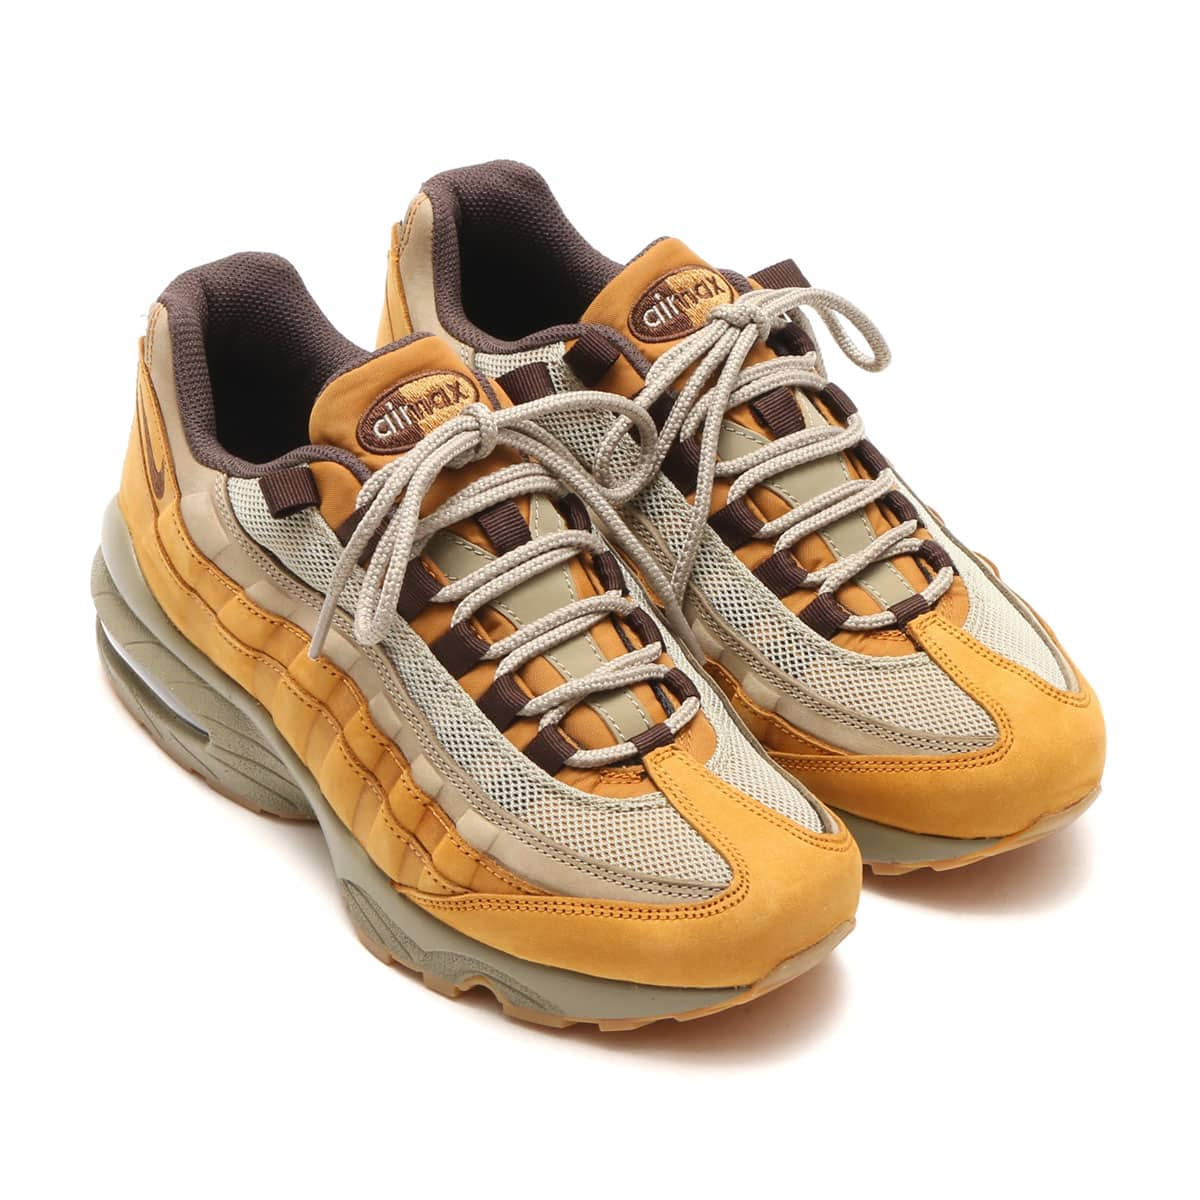 NIKE AIR MAX 95 WINTER PRM GS BRONZE/BAROQUE BROWN-BAMBOO_photo_large